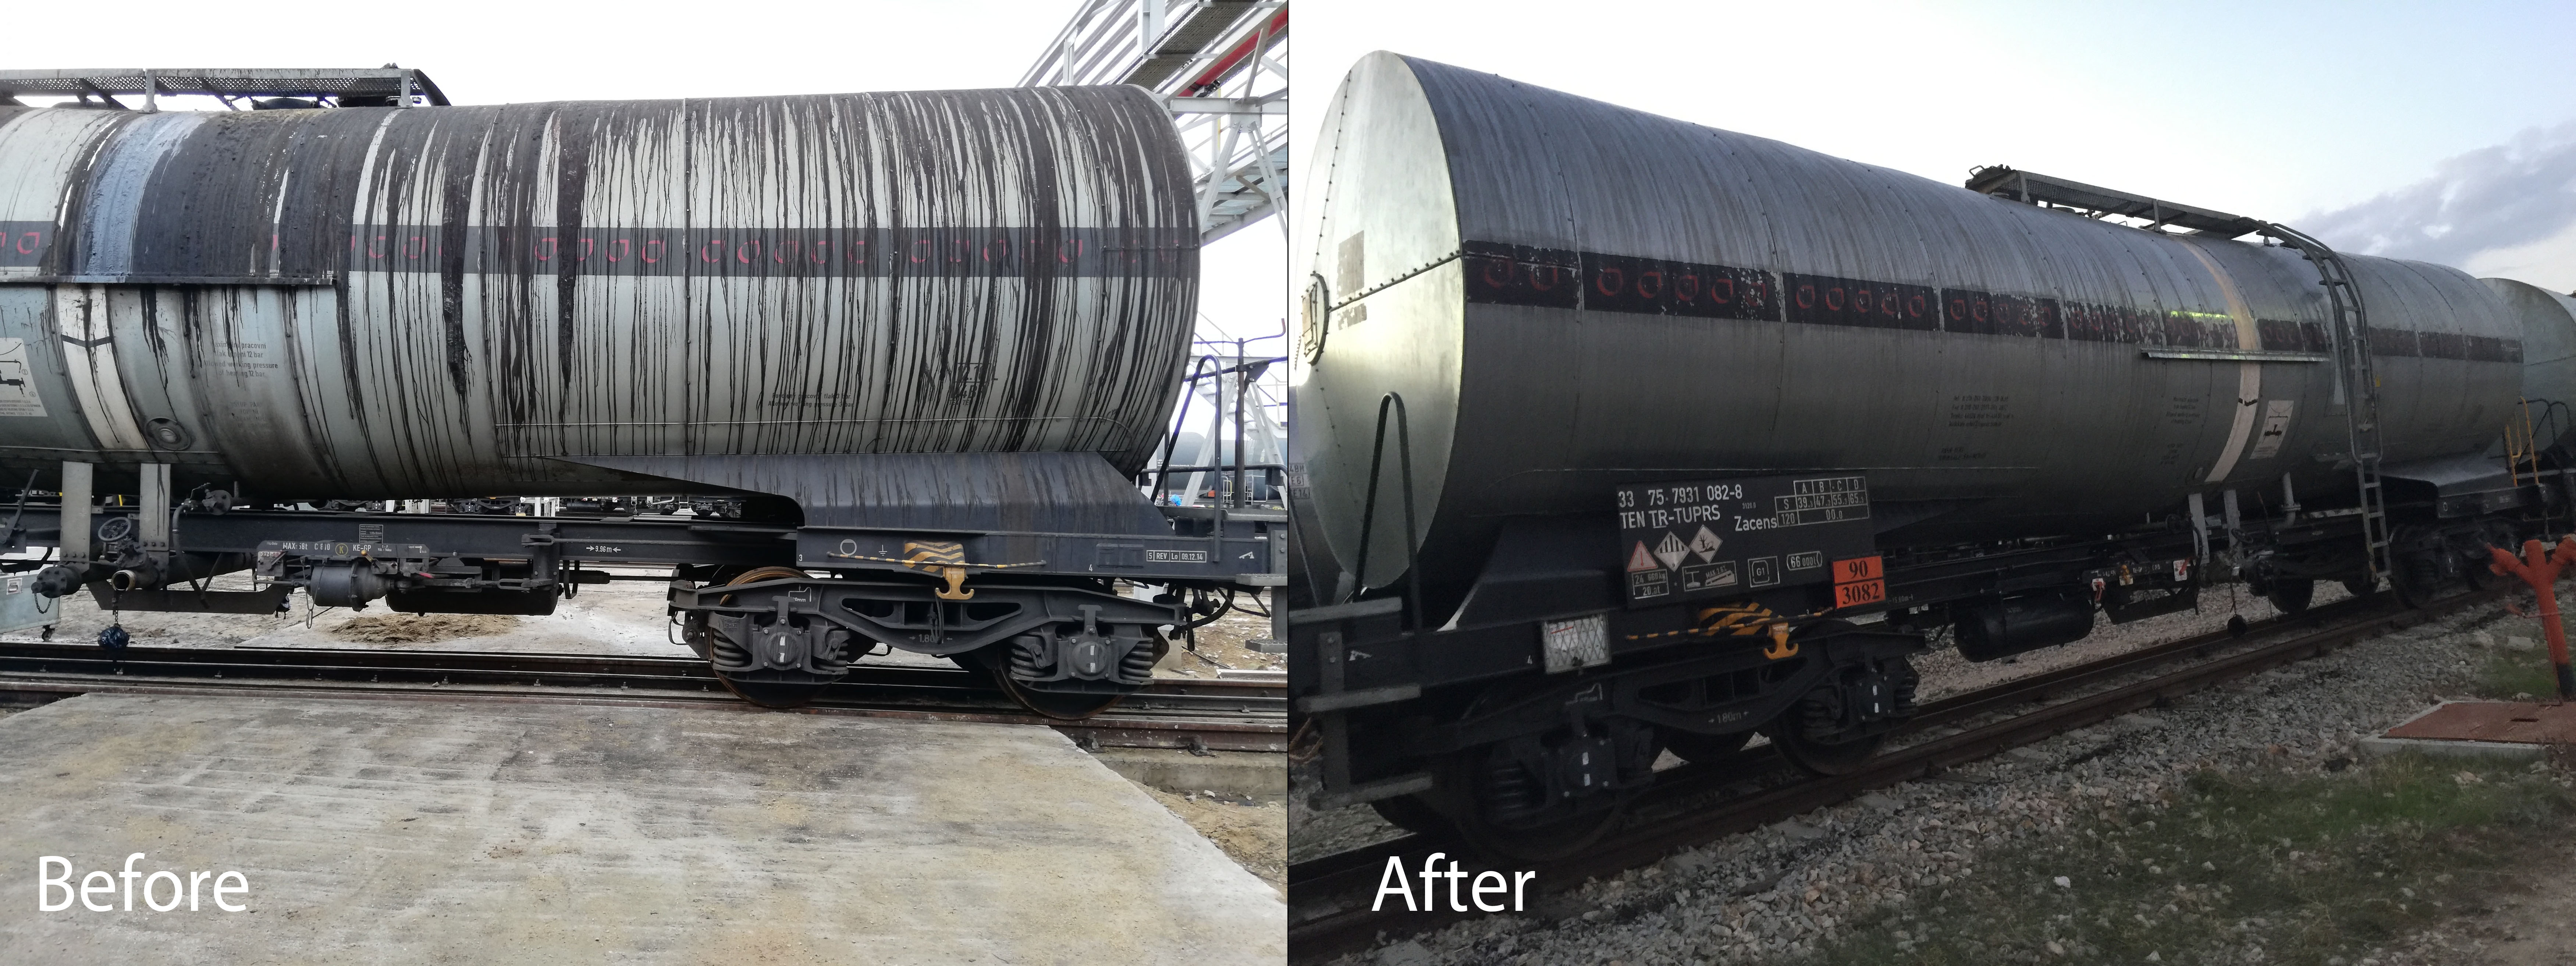 oil train before_after